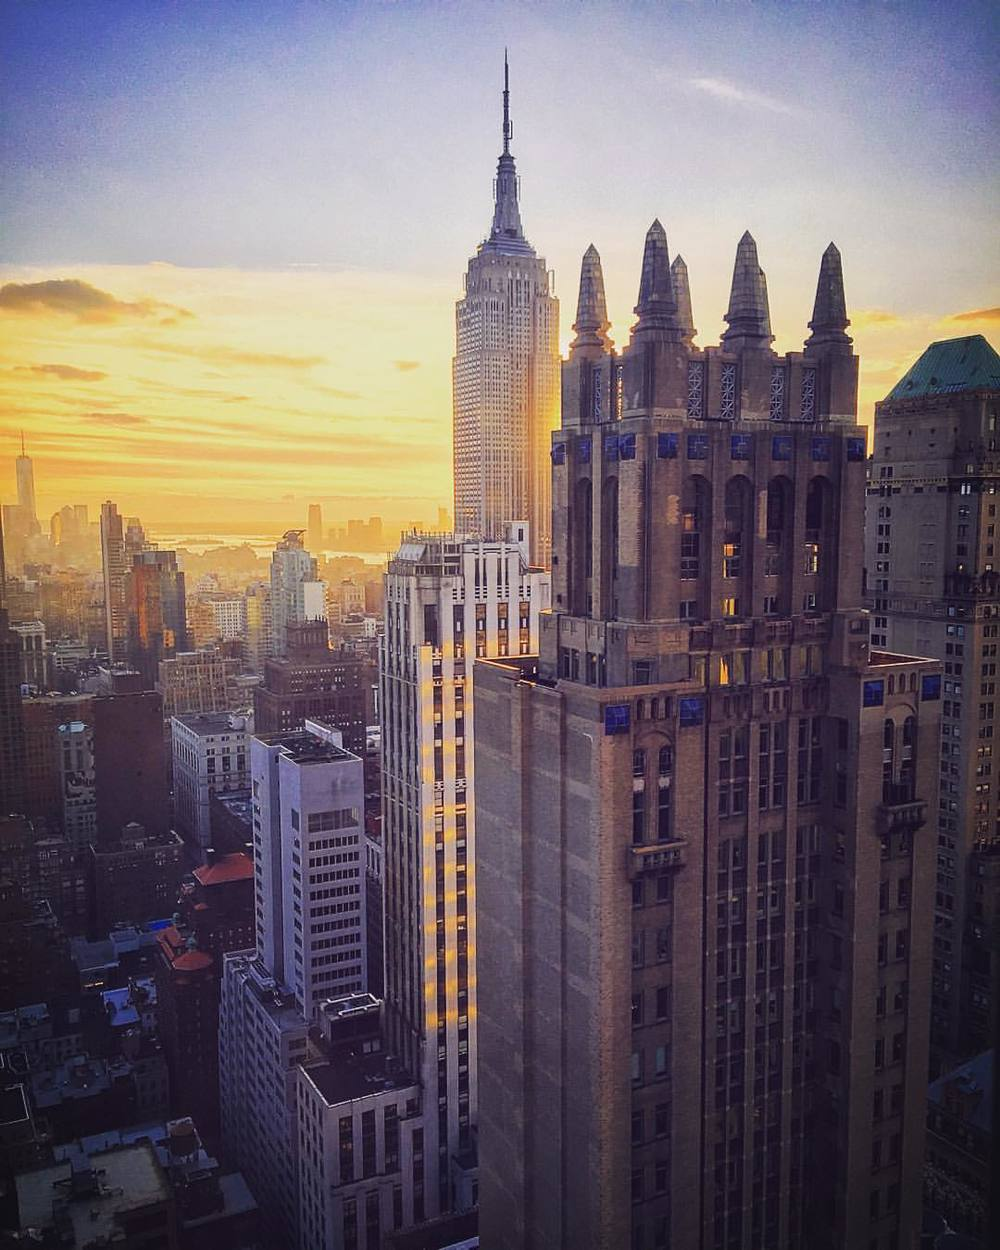 Sometimes this city just surprises you… 📸: from a random midtown office restroom 🚽😧🌇  ||  #surprise #nyc #sunset #iloveny #empirestatebuilding #empirestateofmind #manhattan #newyork #worldtradecenter #realestate #openhouse #inspo #openhouseny @tonysargentnyc #tonysargentknows #secretbathroomviews  (at Grand Central Terminal)